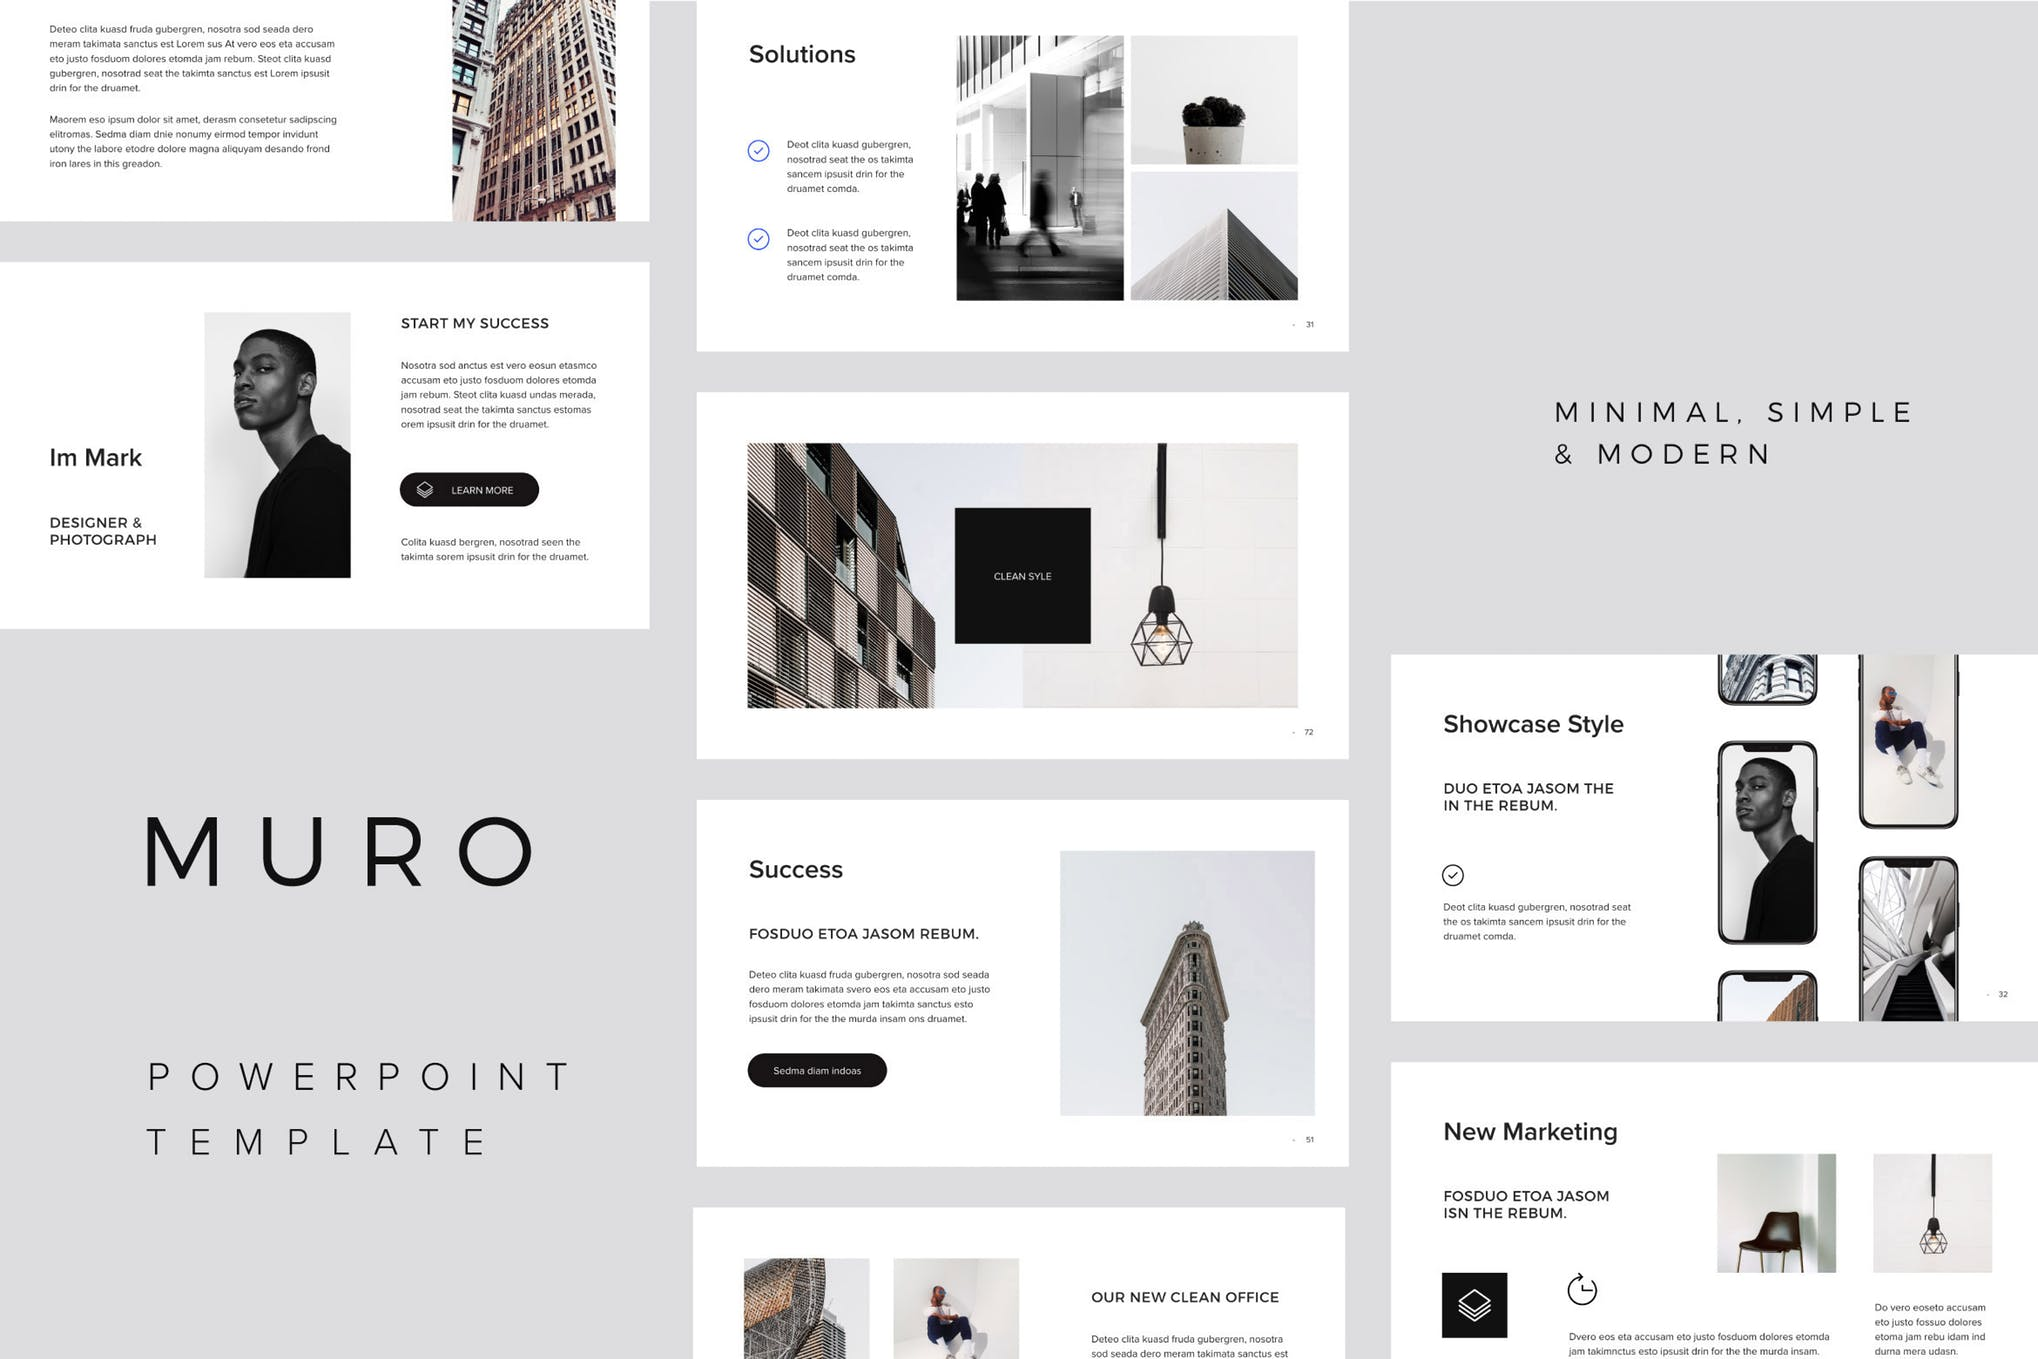 PowerPoint Minimal Template